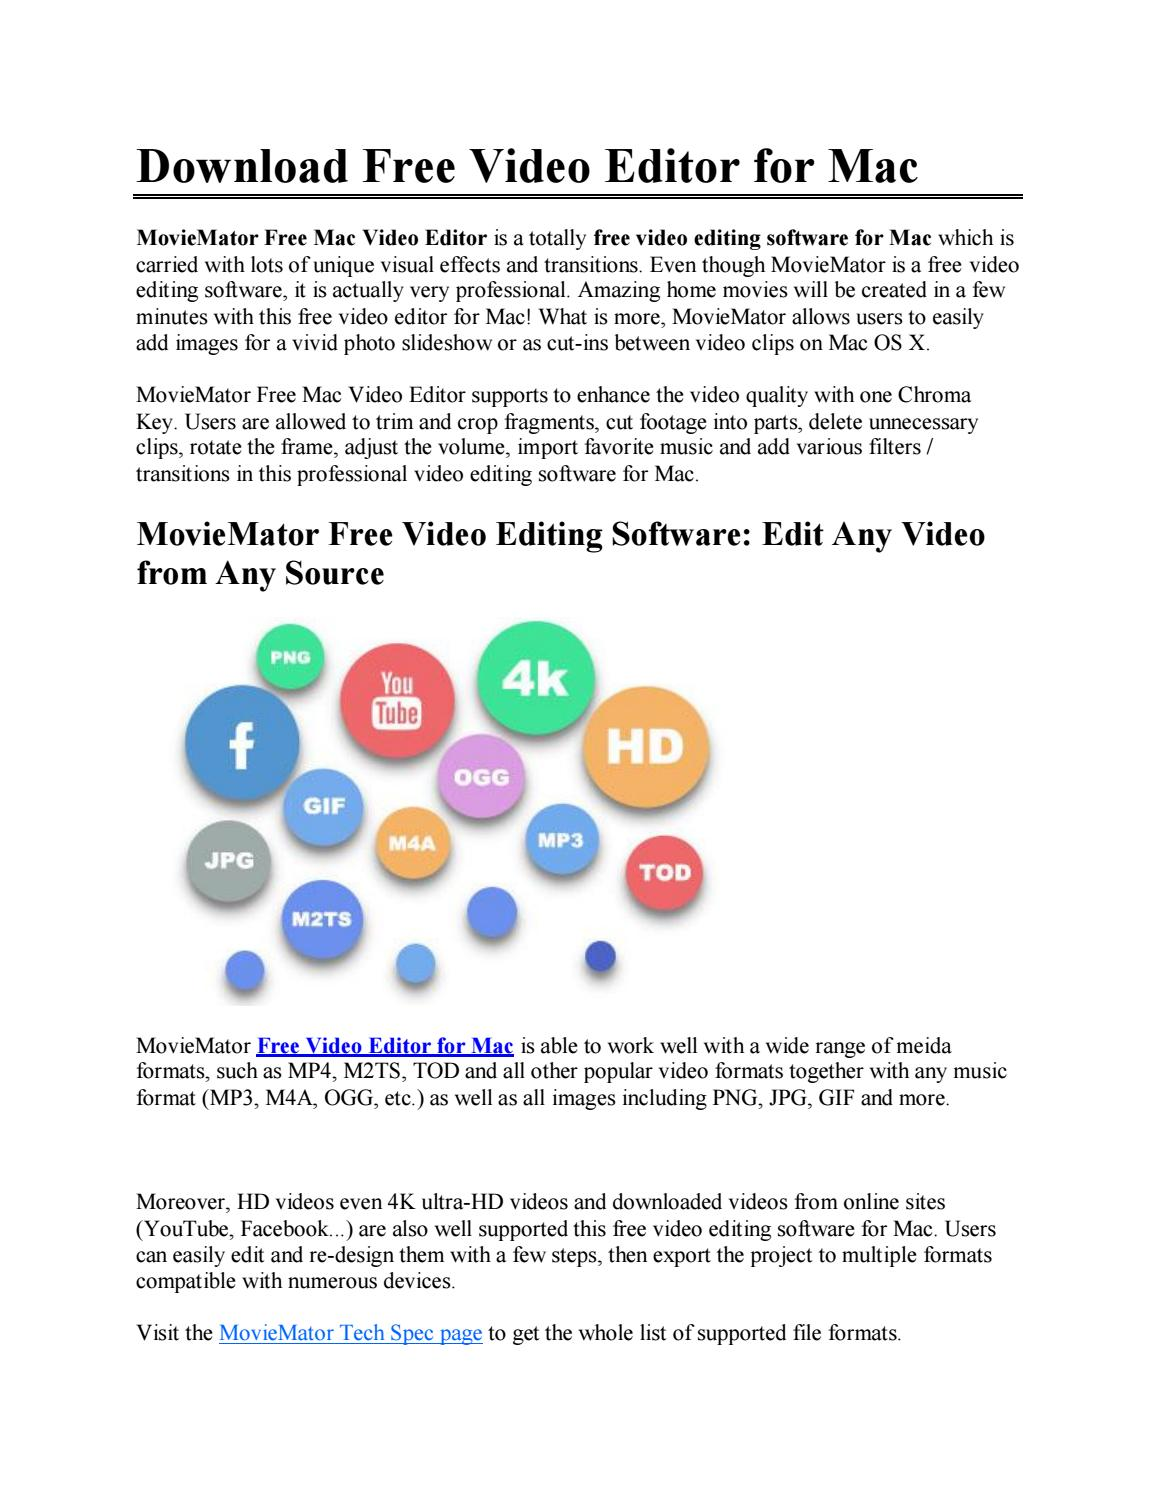 Download free video editor for mac by EtinySoft - issuu